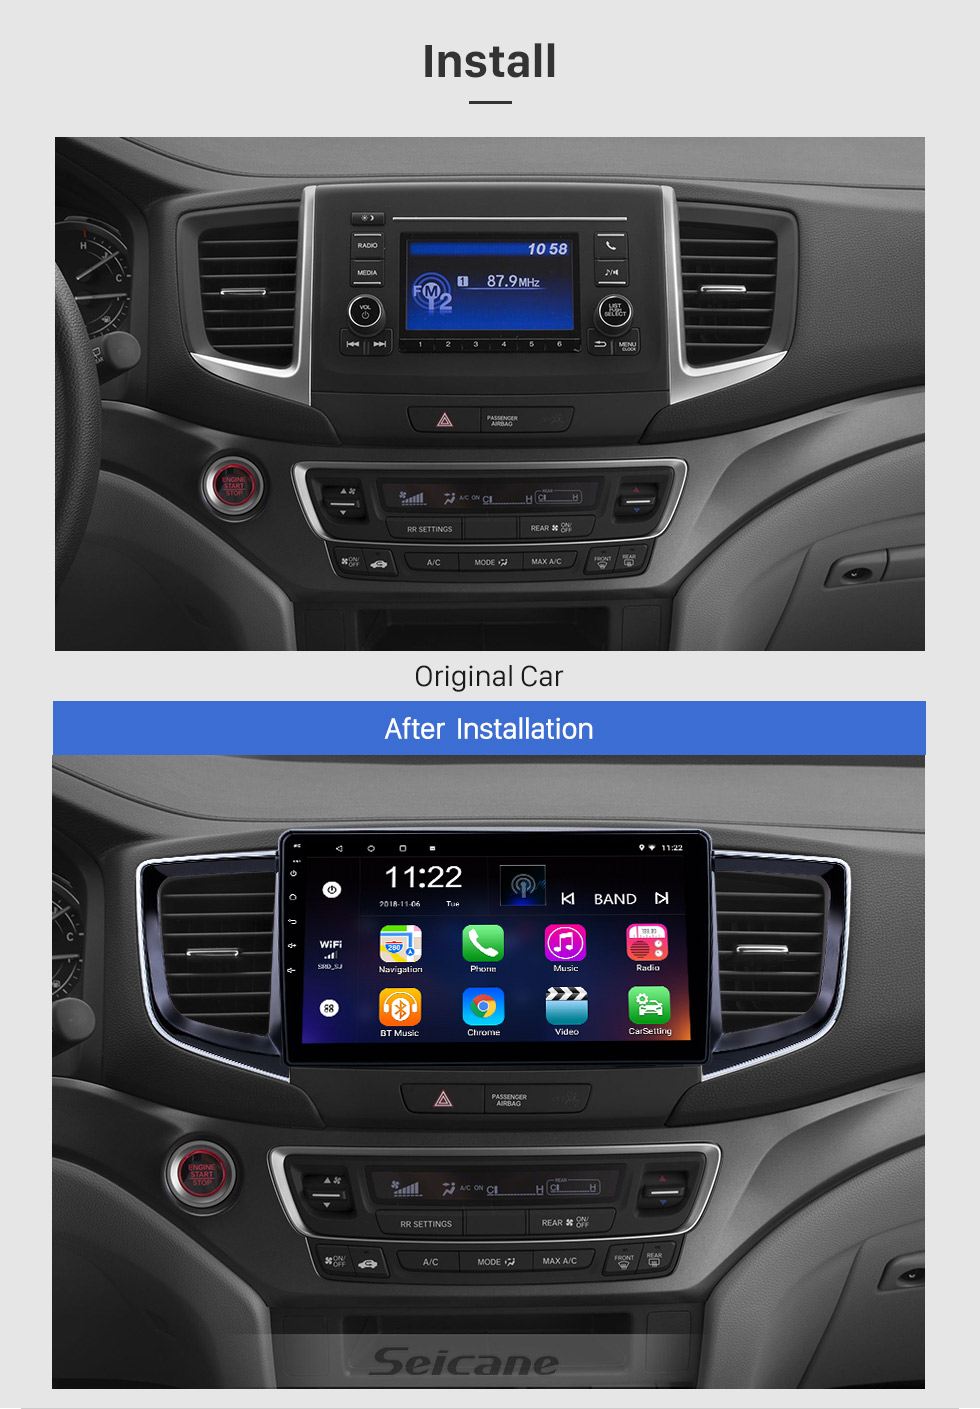 Seicane 10.1 inch Android 8.1 GPS Navigation Radio for 2016-2018 Honda Pilot with HD Touchscreen Bluetooth WIFI support Carplay SWC